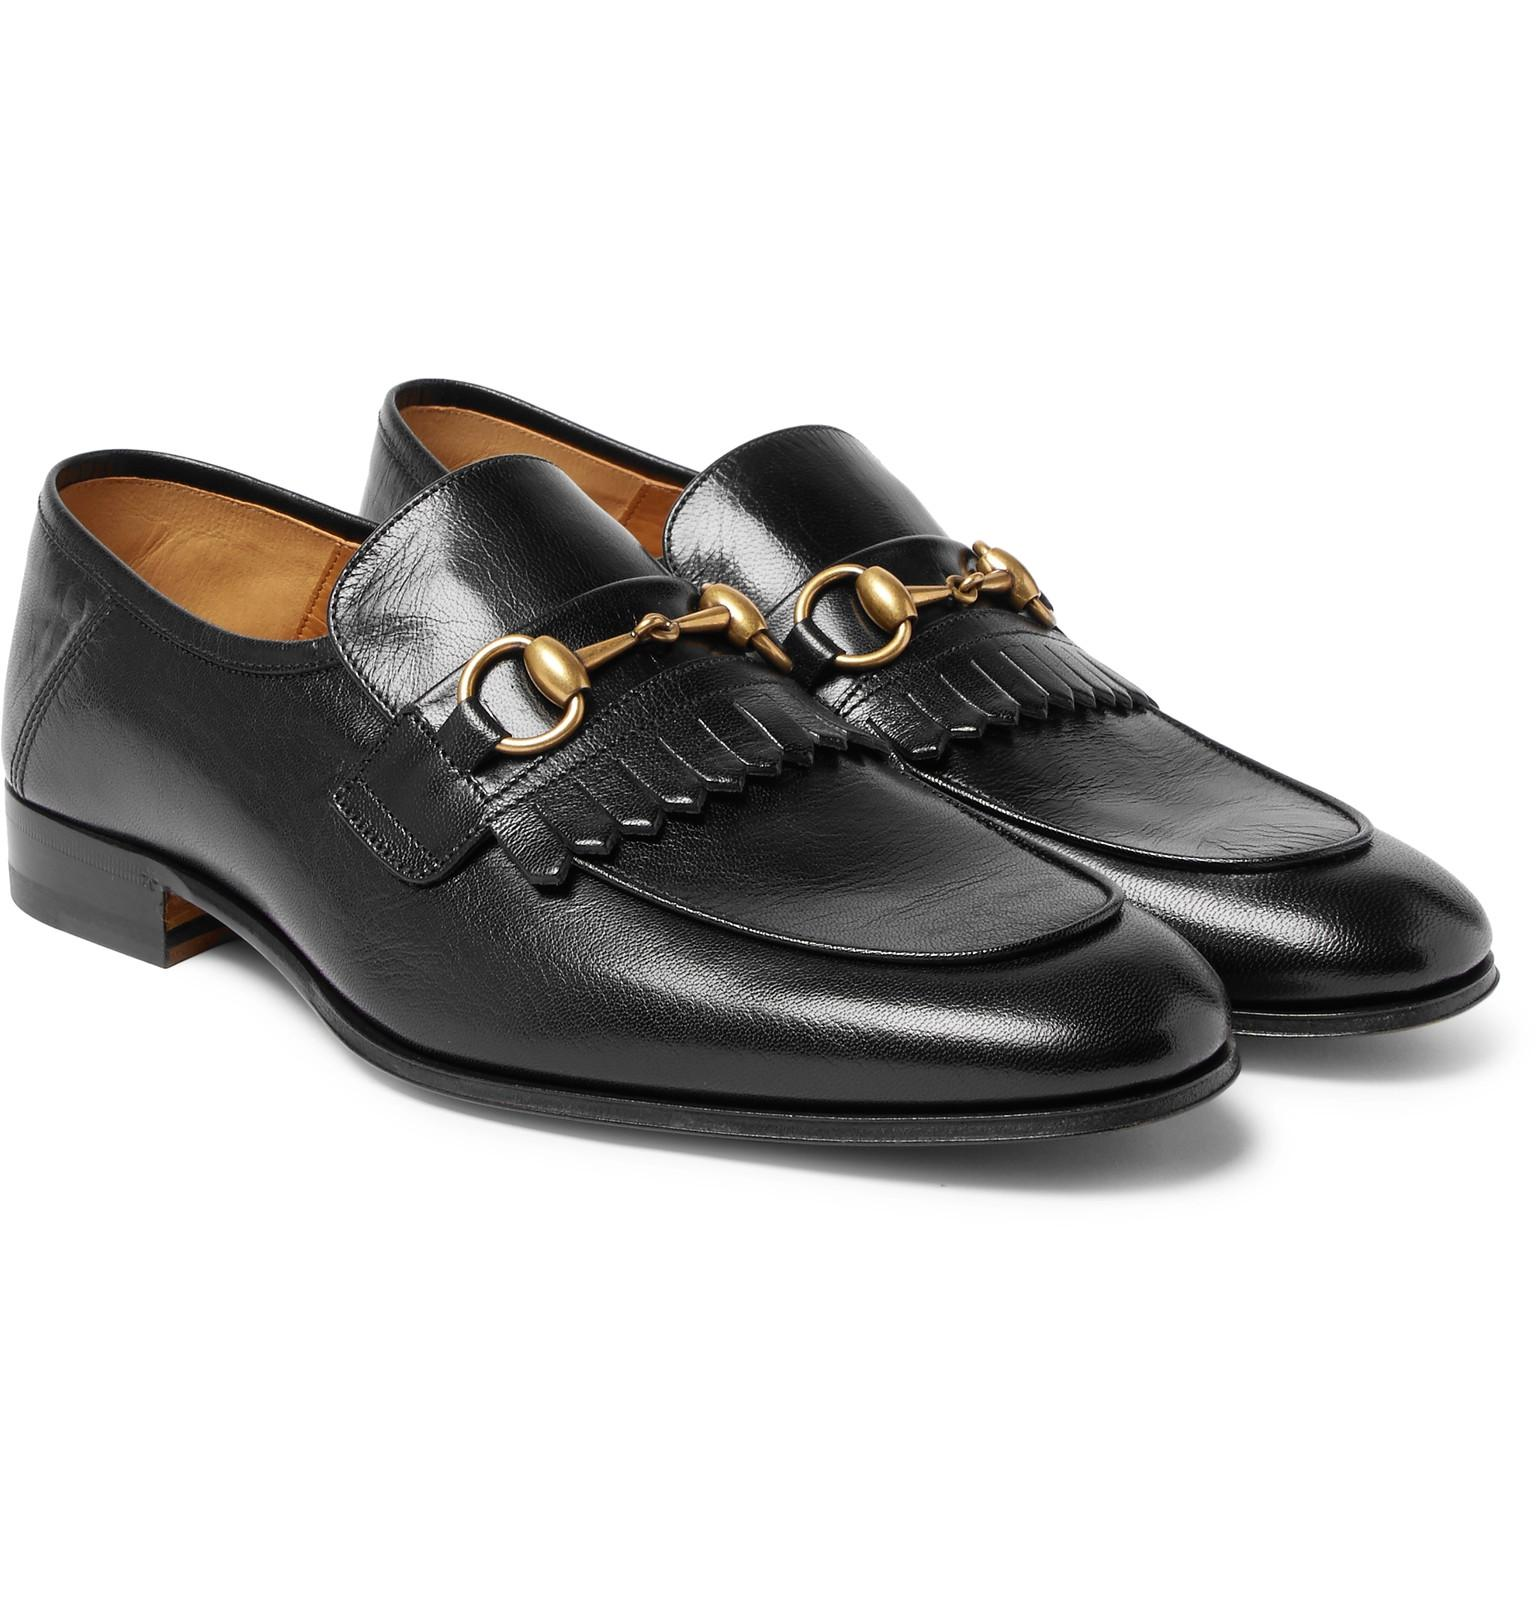 d0d0e6dd6a0 Gucci Harbor Horsebit Fringed Leather Loafers in Black for Men - Lyst